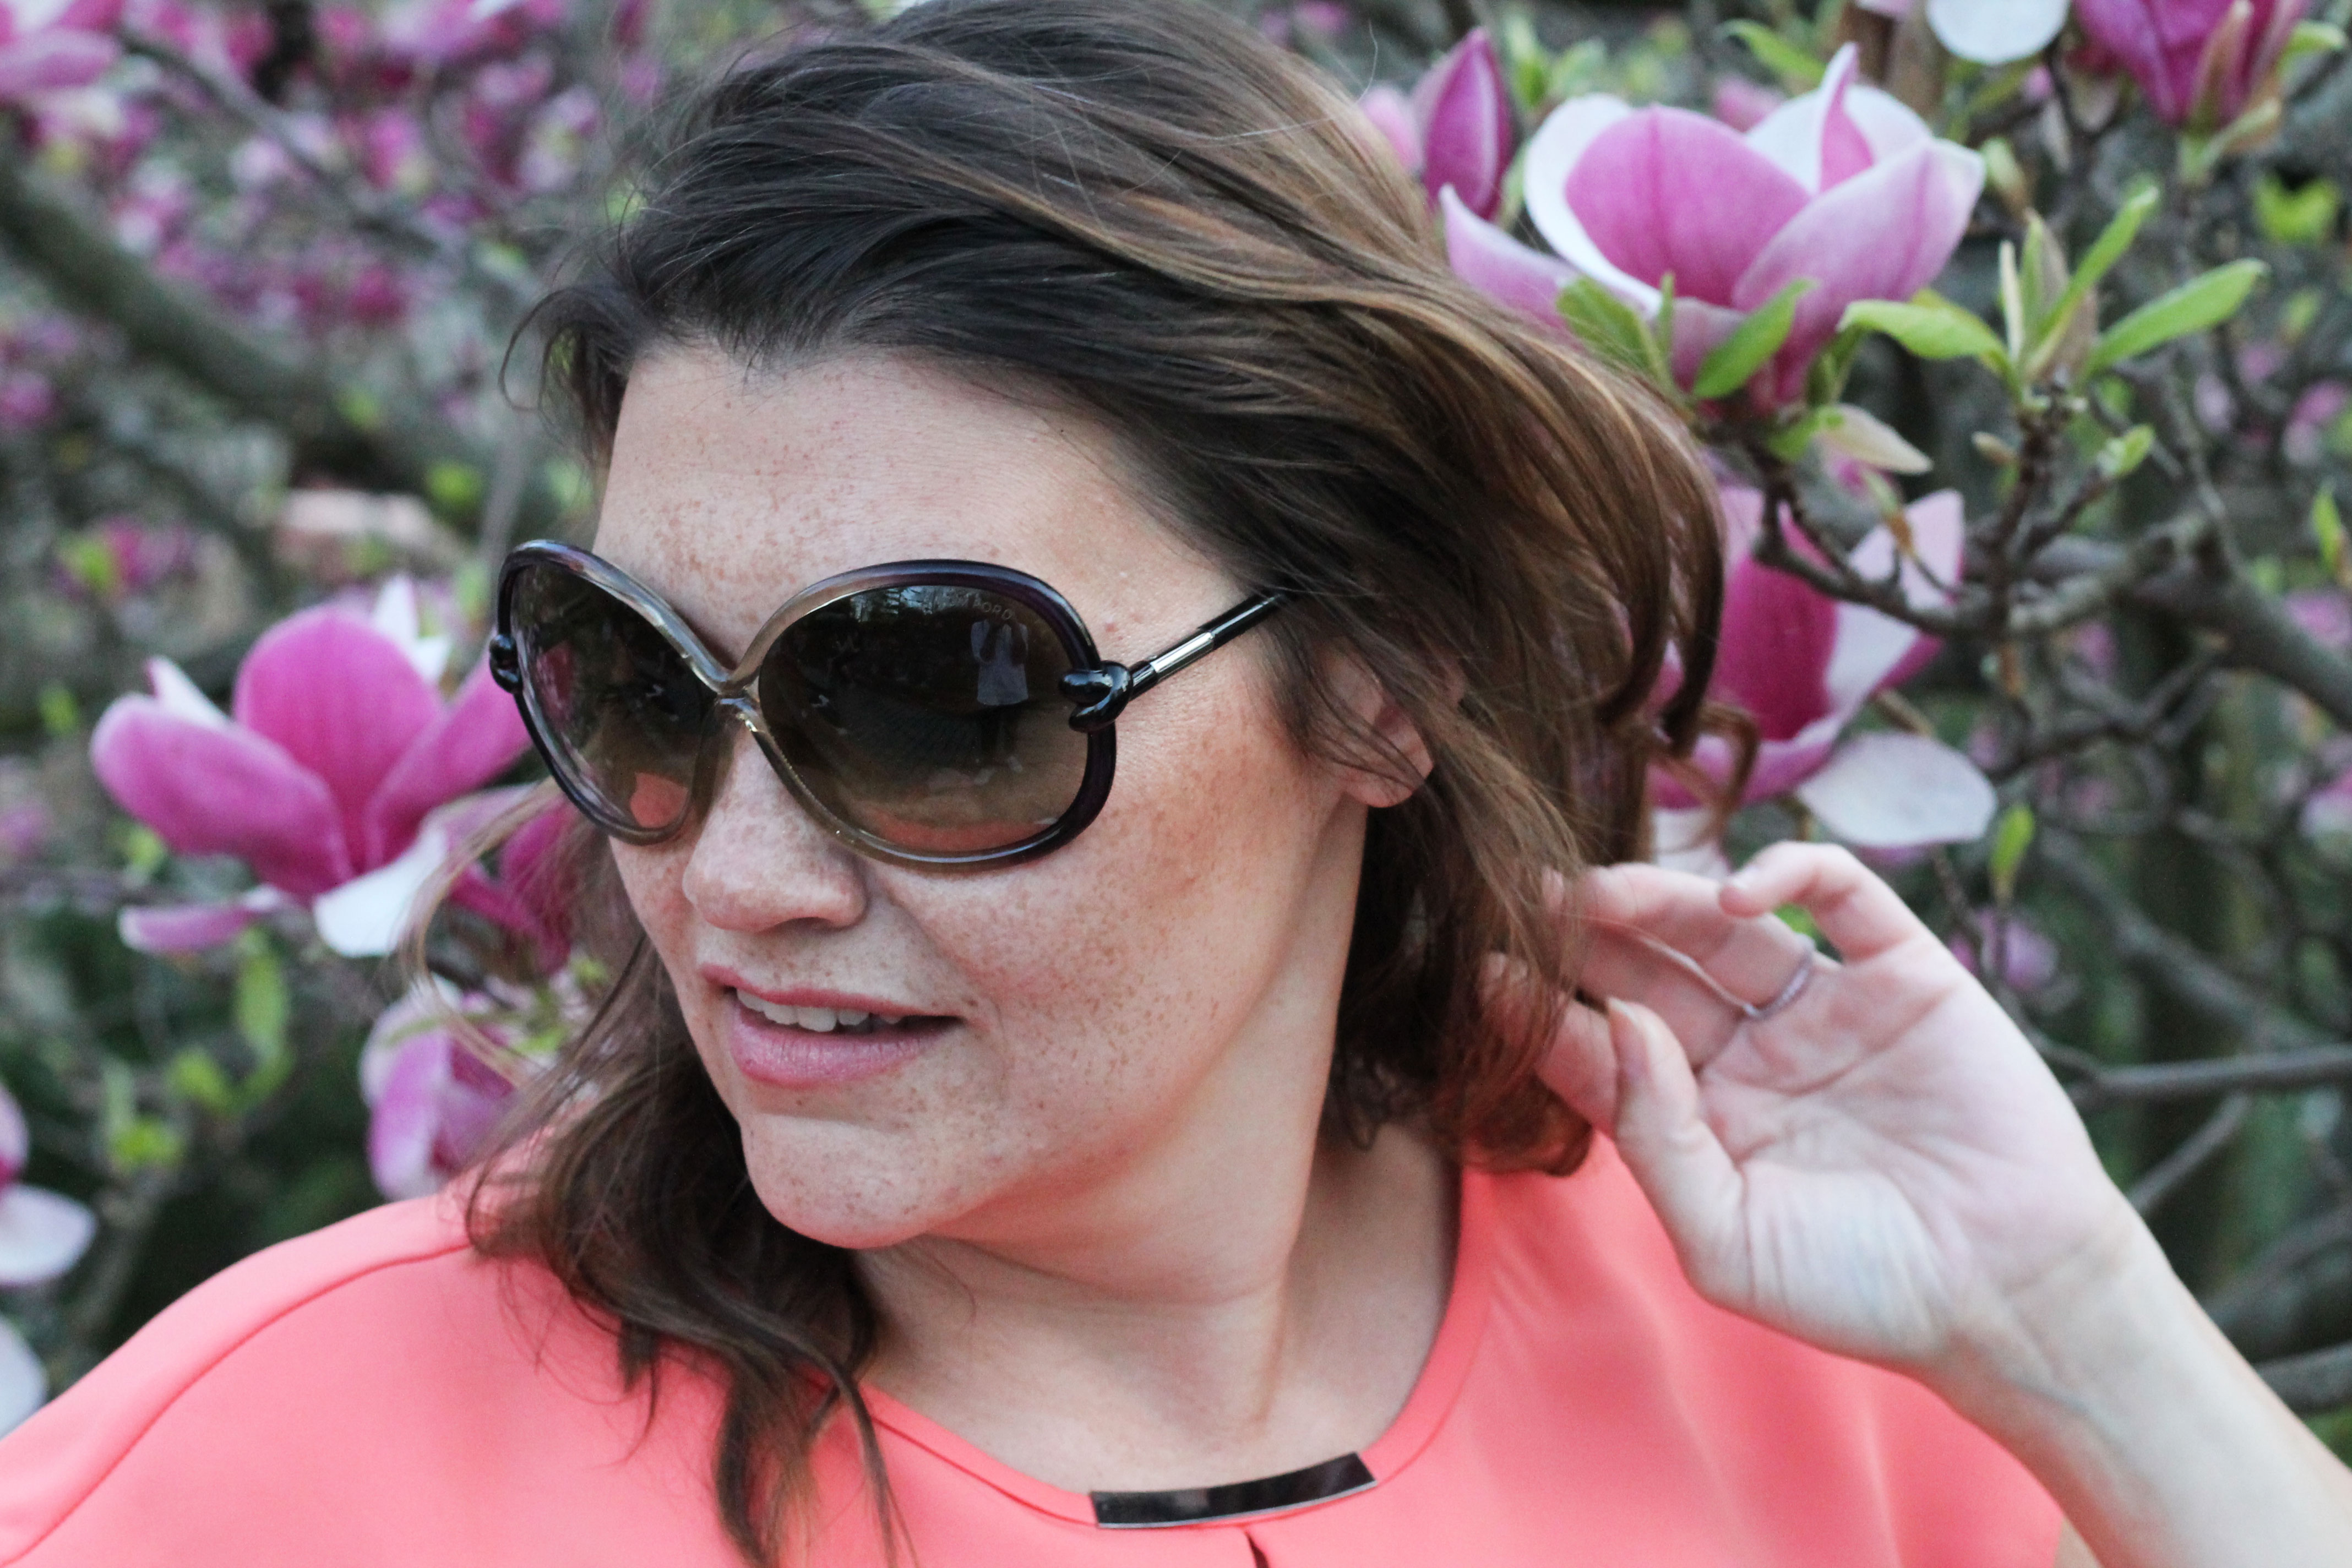 KT-spring-look-my-look-plussize-fashion-outfit-hm-tellerrock-setagaya-park-kardiaserena-peach-tom-ford-sonnenbrille-magnolia-ladylike